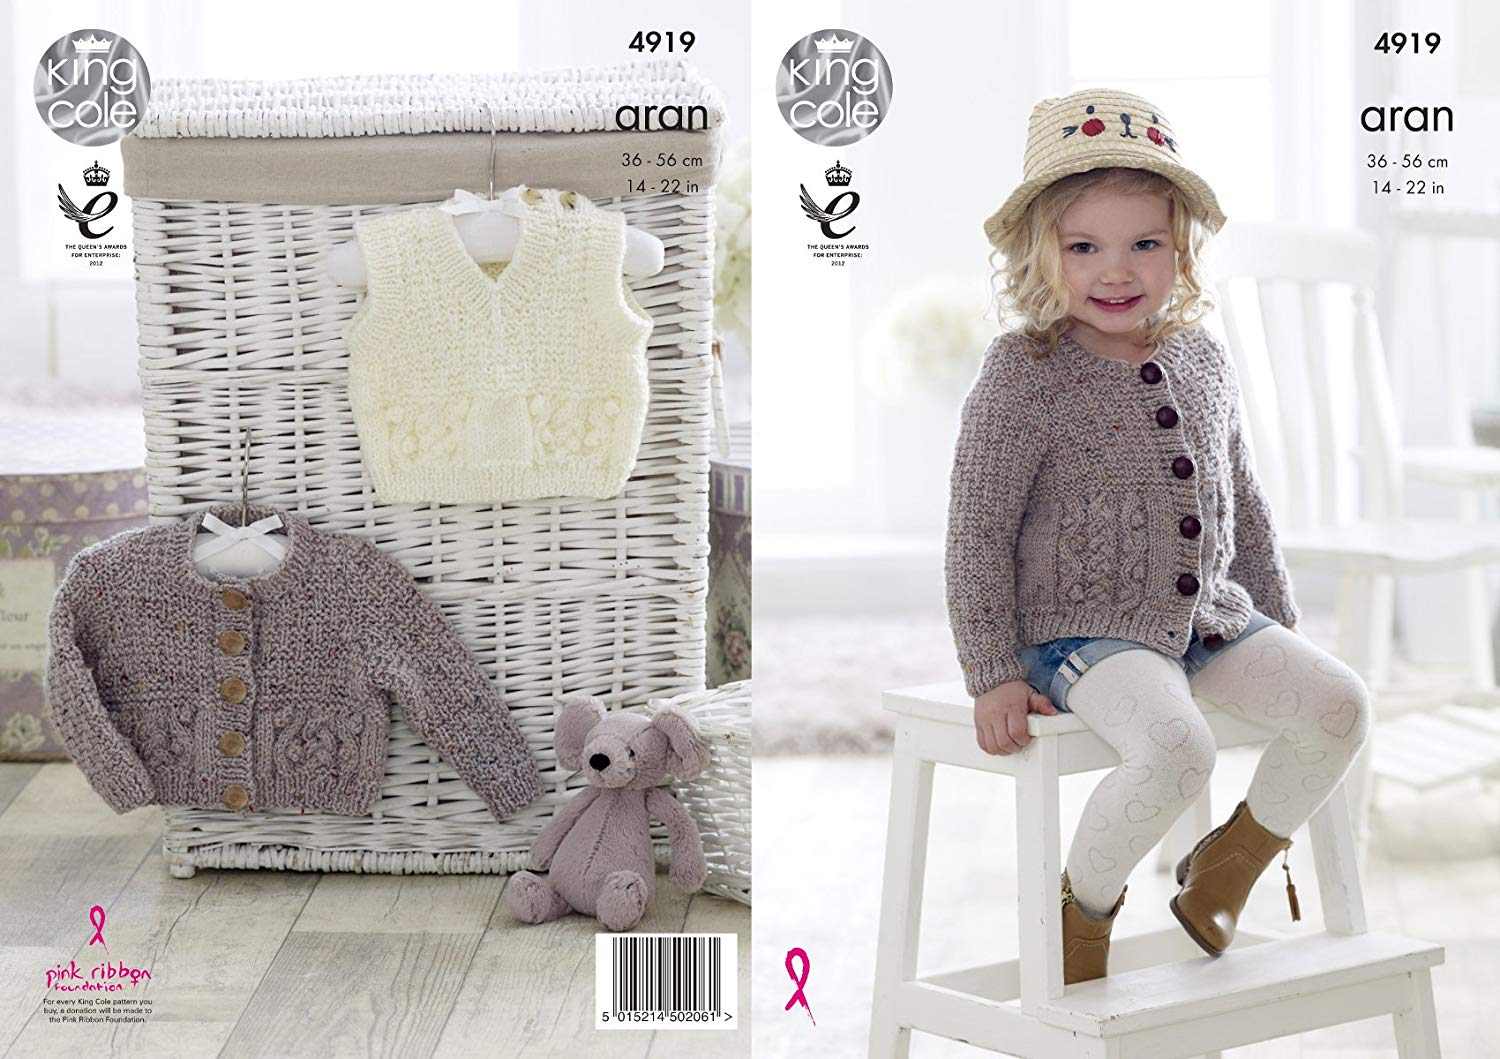 d54f68892af243 Get Quotations · King Cole Girls Aran Knitting Pattern Childrens Cabled  Detail Cardigan   Slipover (4919)